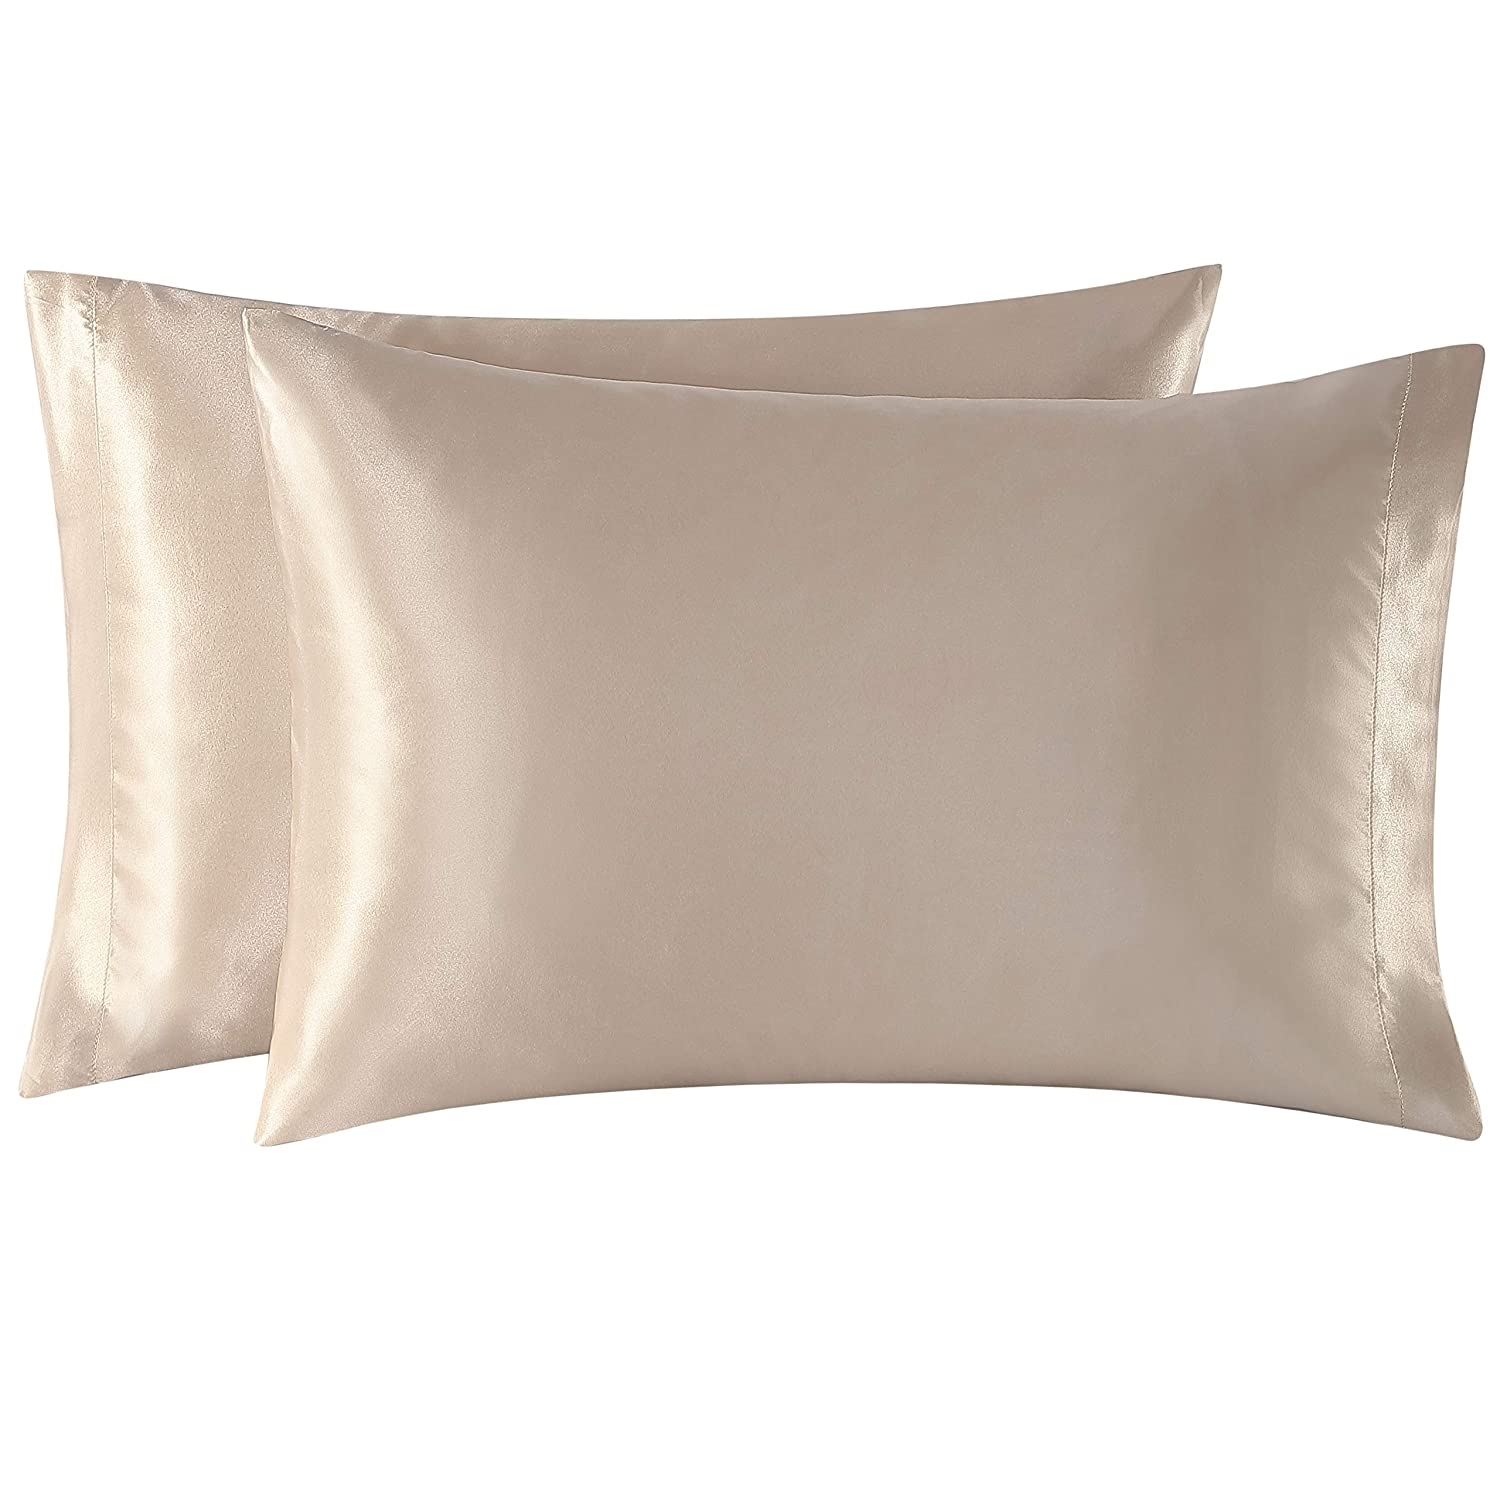 EXQ Home Satin Pillowcases Set of 2 for Hair and Skin Queen Size 20x30 Camel Pillow Case with Envelope Closure.